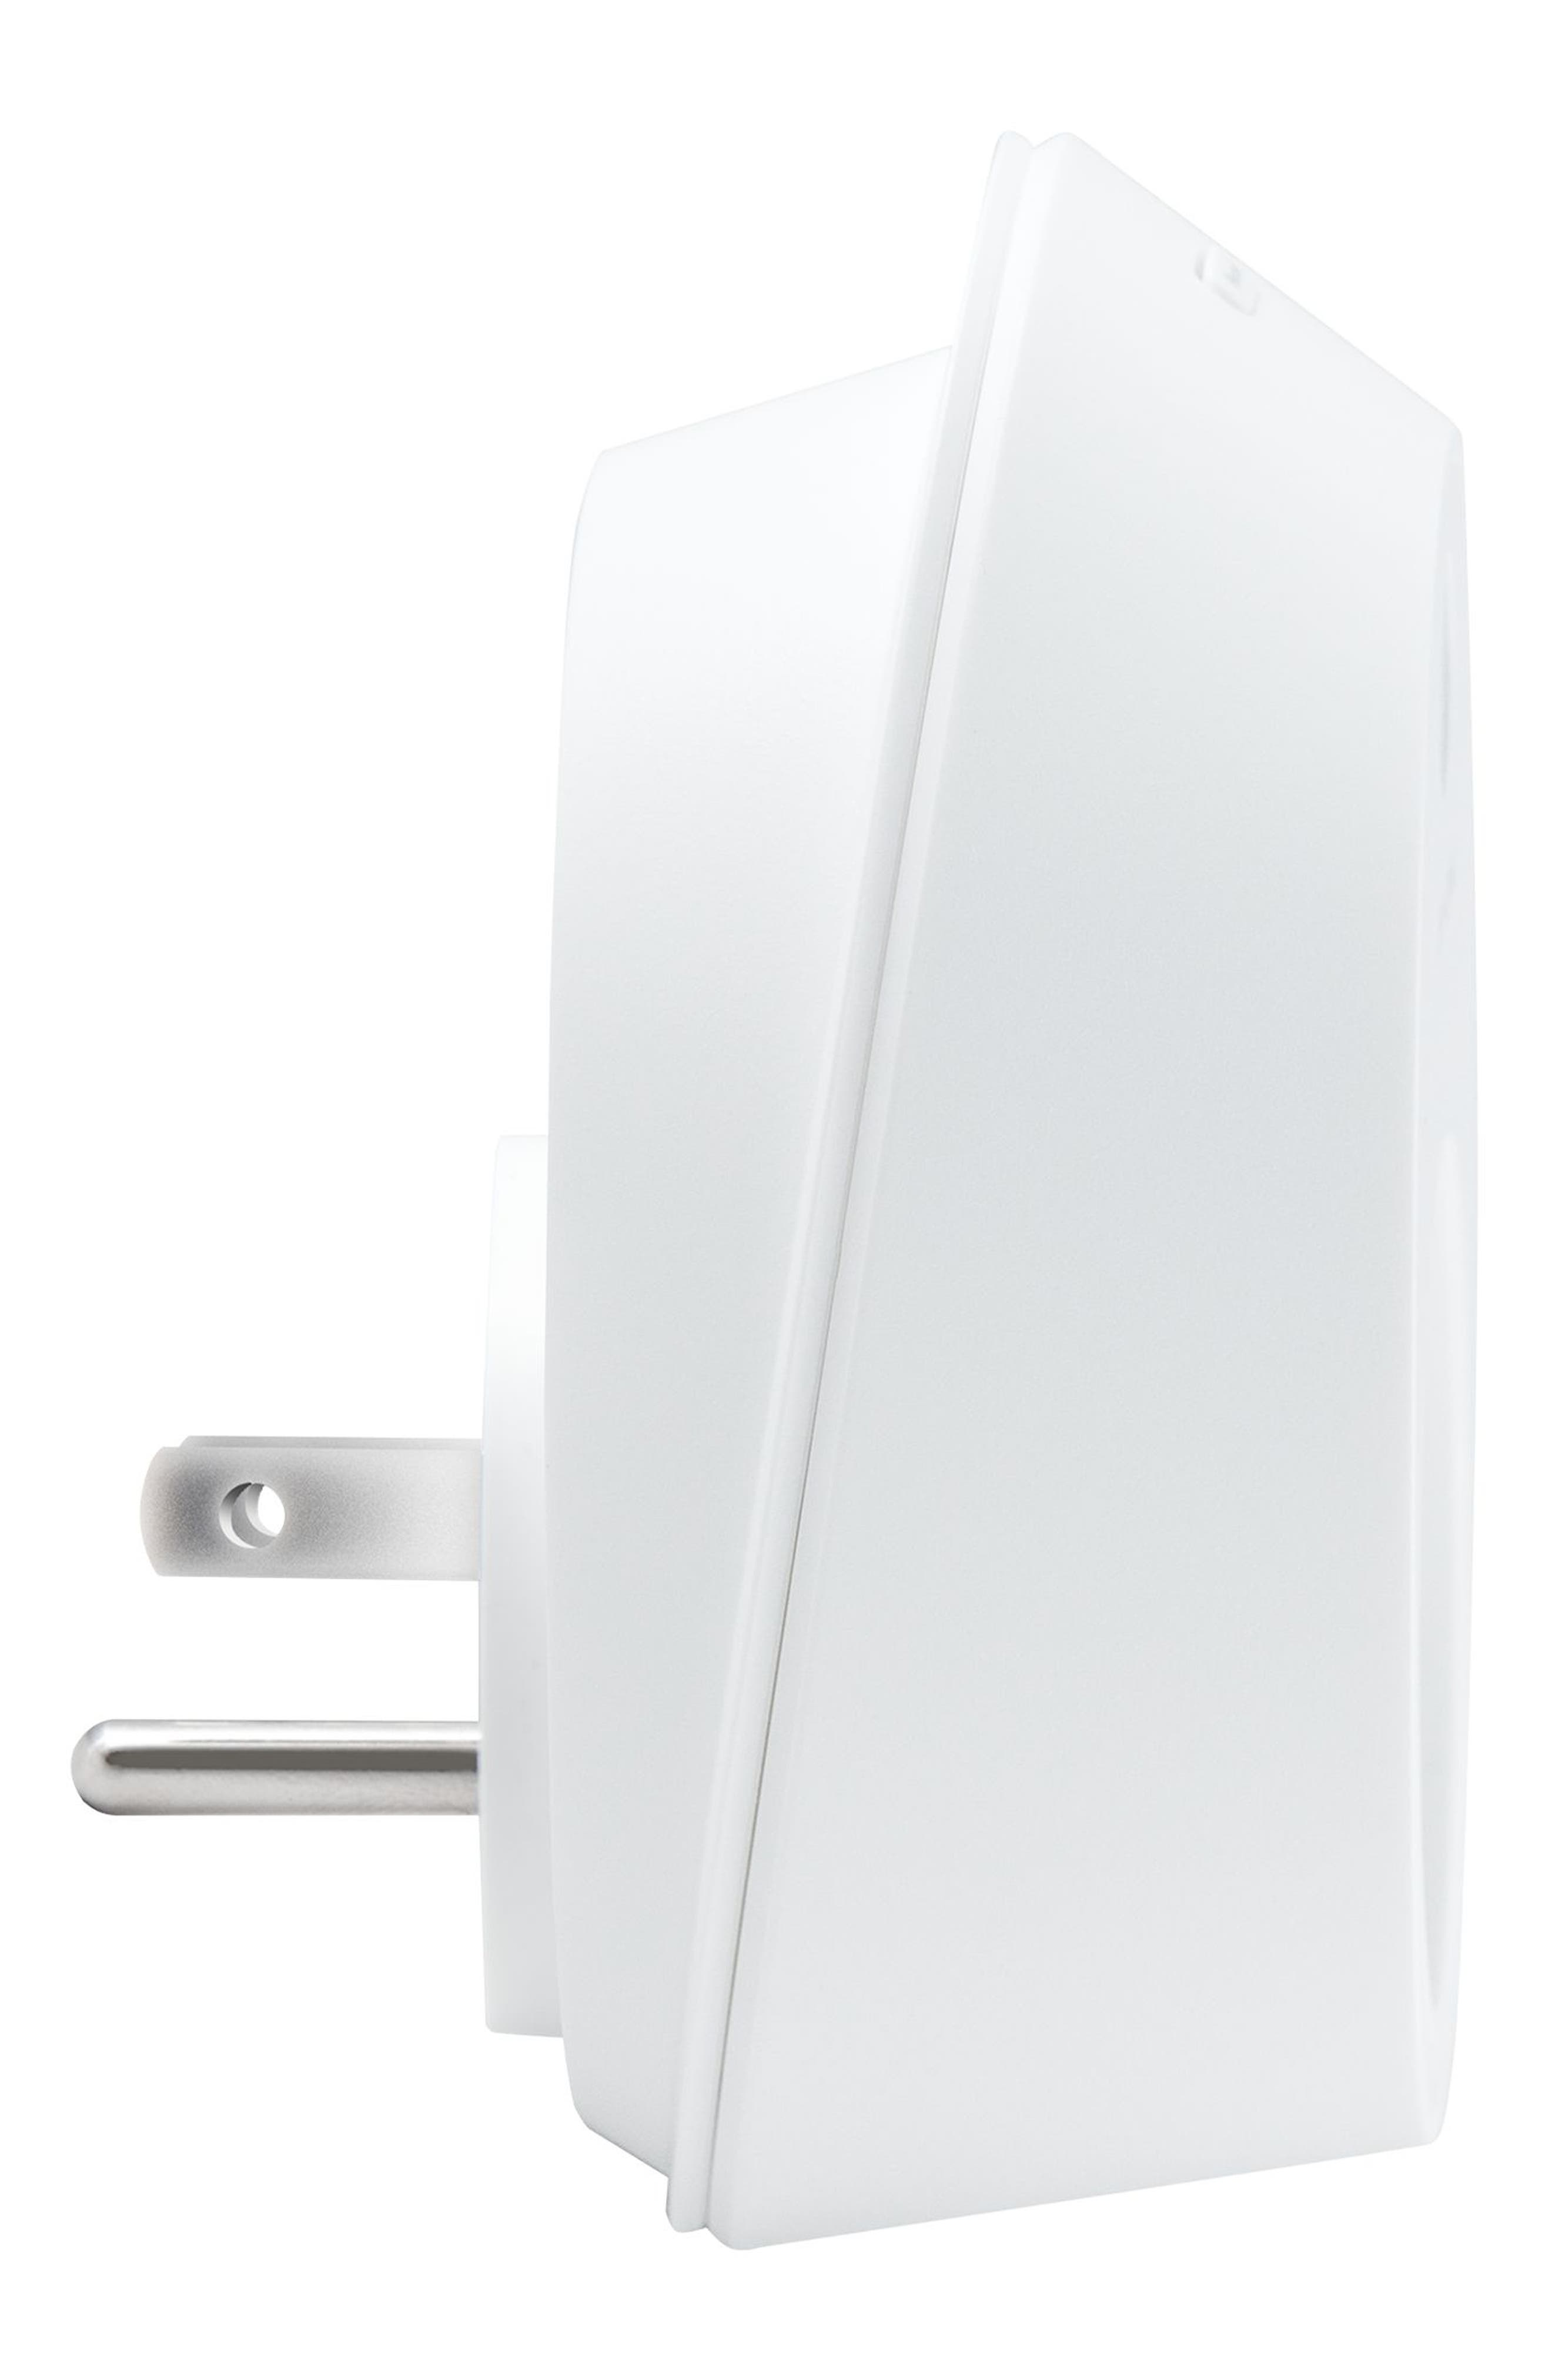 Smart Wi-Fi Outlet Plug,                             Alternate thumbnail 2, color,                             WHITE